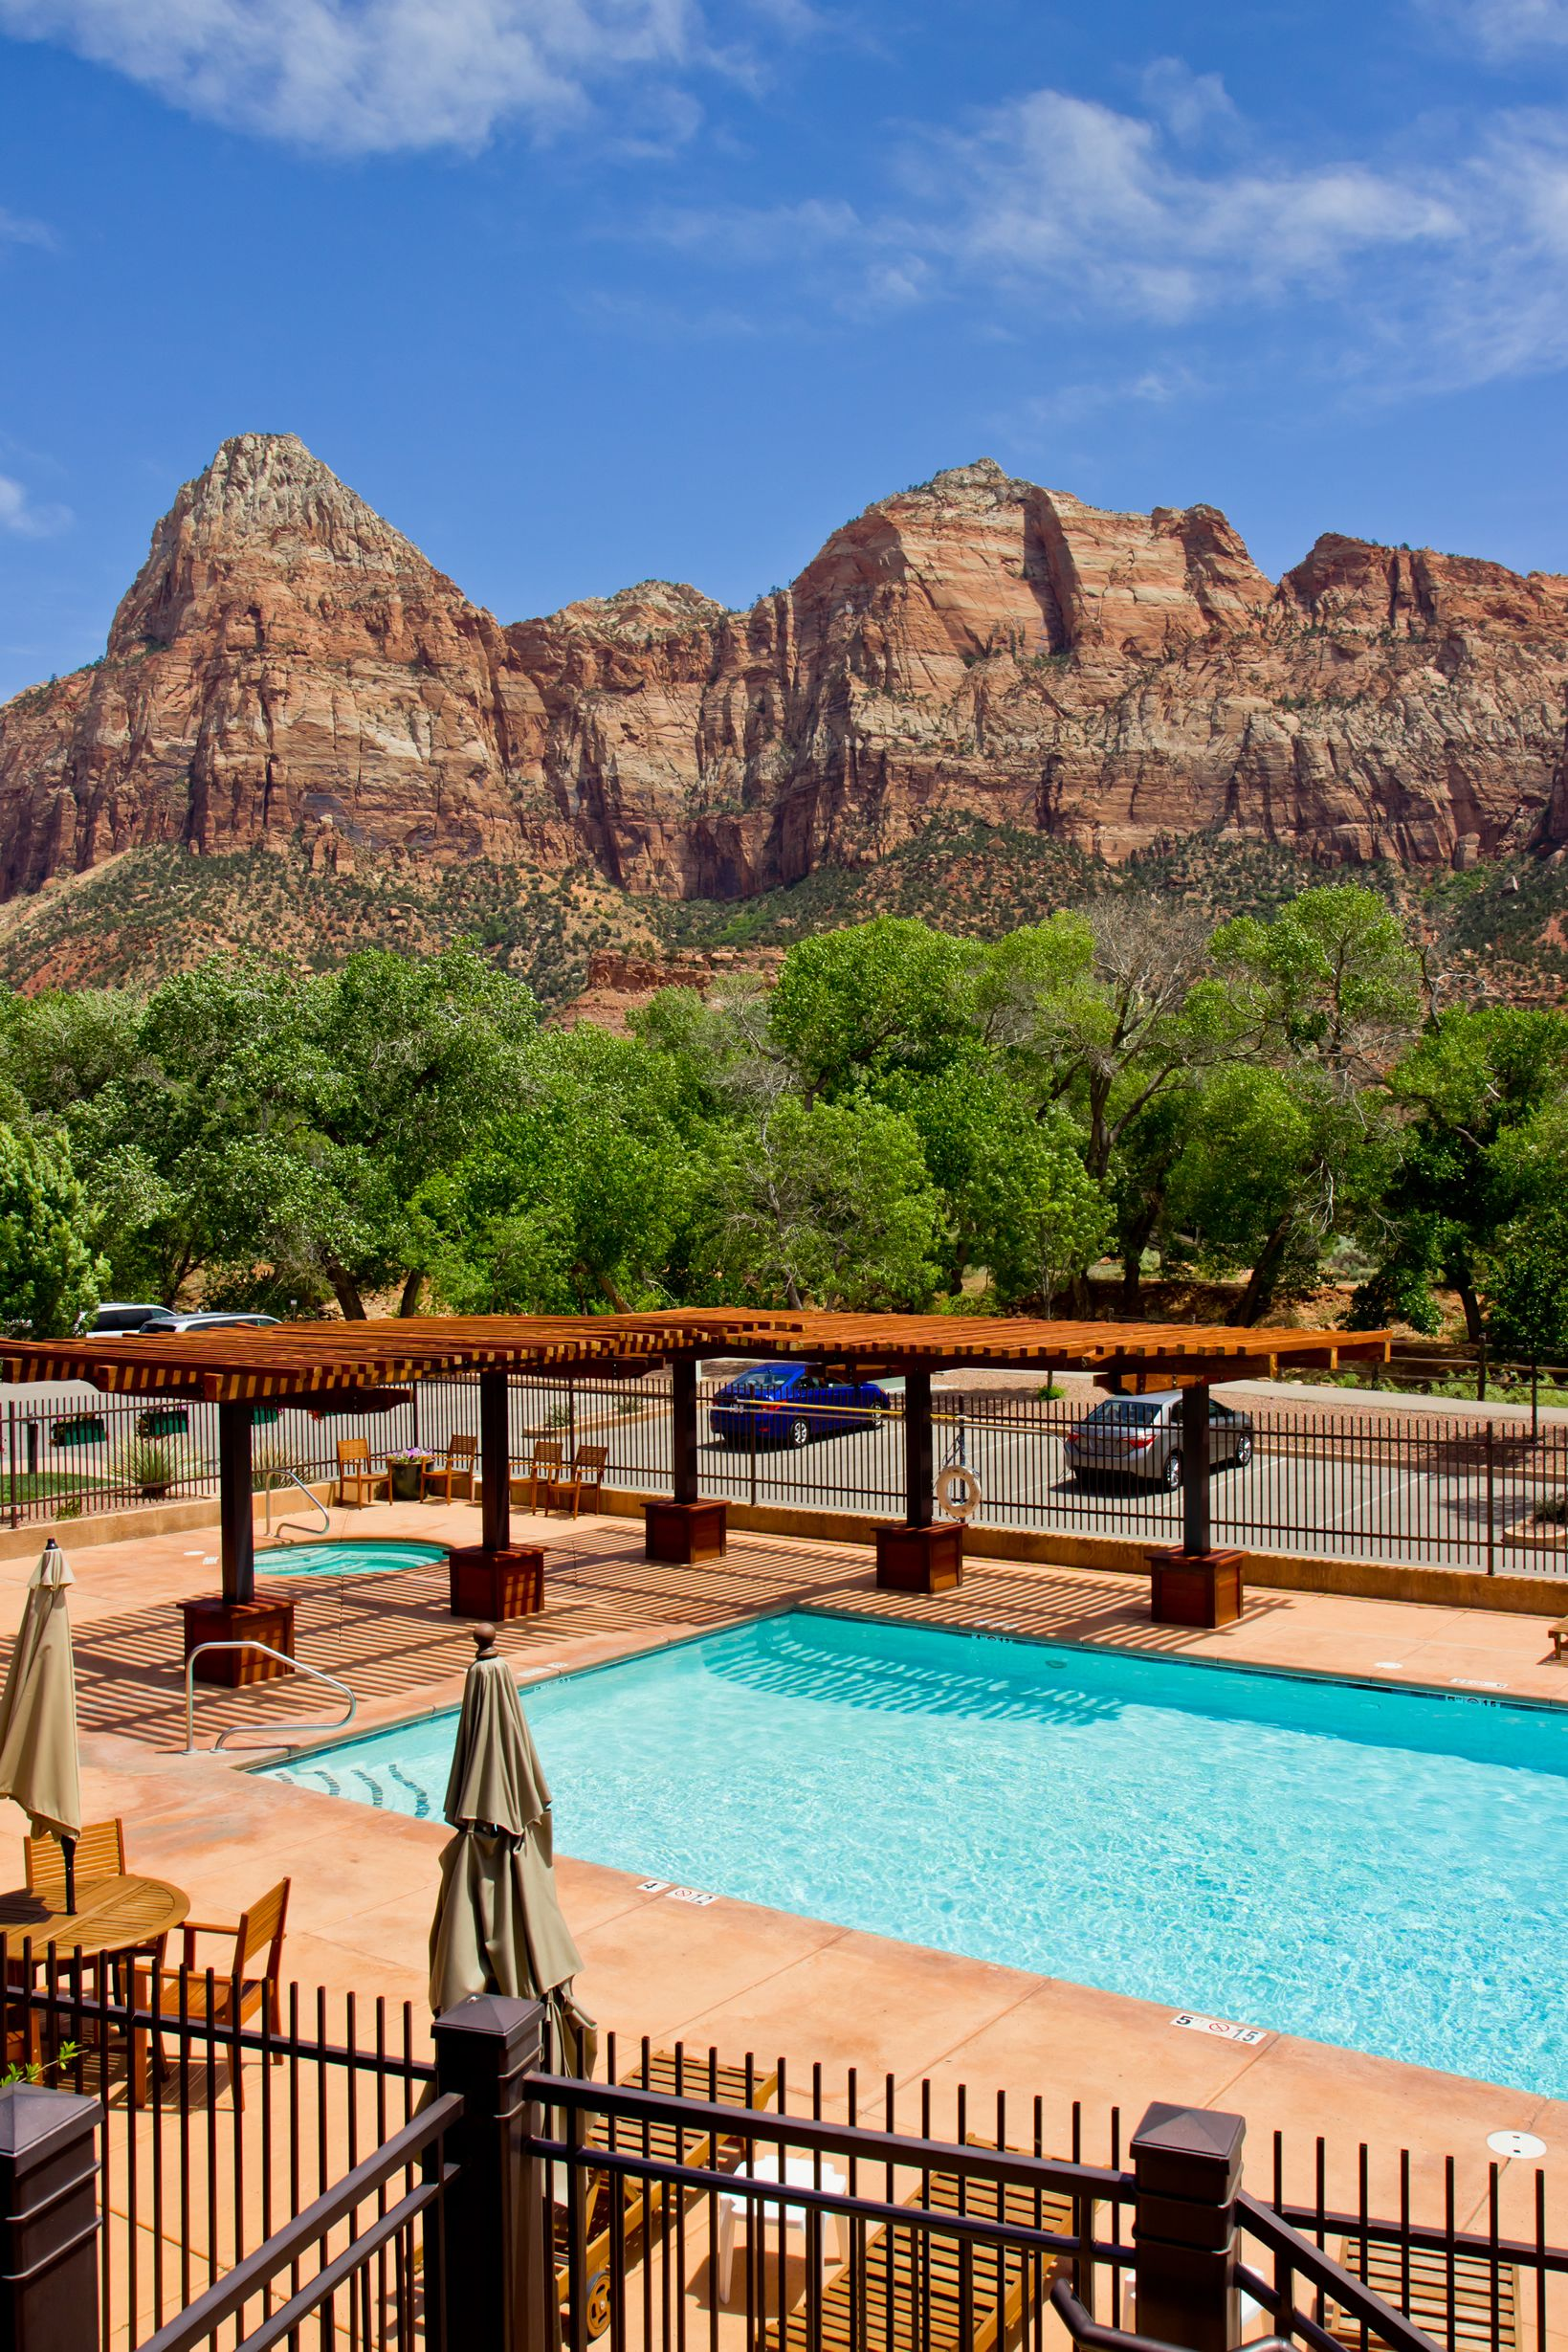 walls national questioned zion sheer joseph to its sandstone name mystery well the that josephs history utah park of little fit a majestic gorge origin so seems high mile half rarely is s with cabins from glory